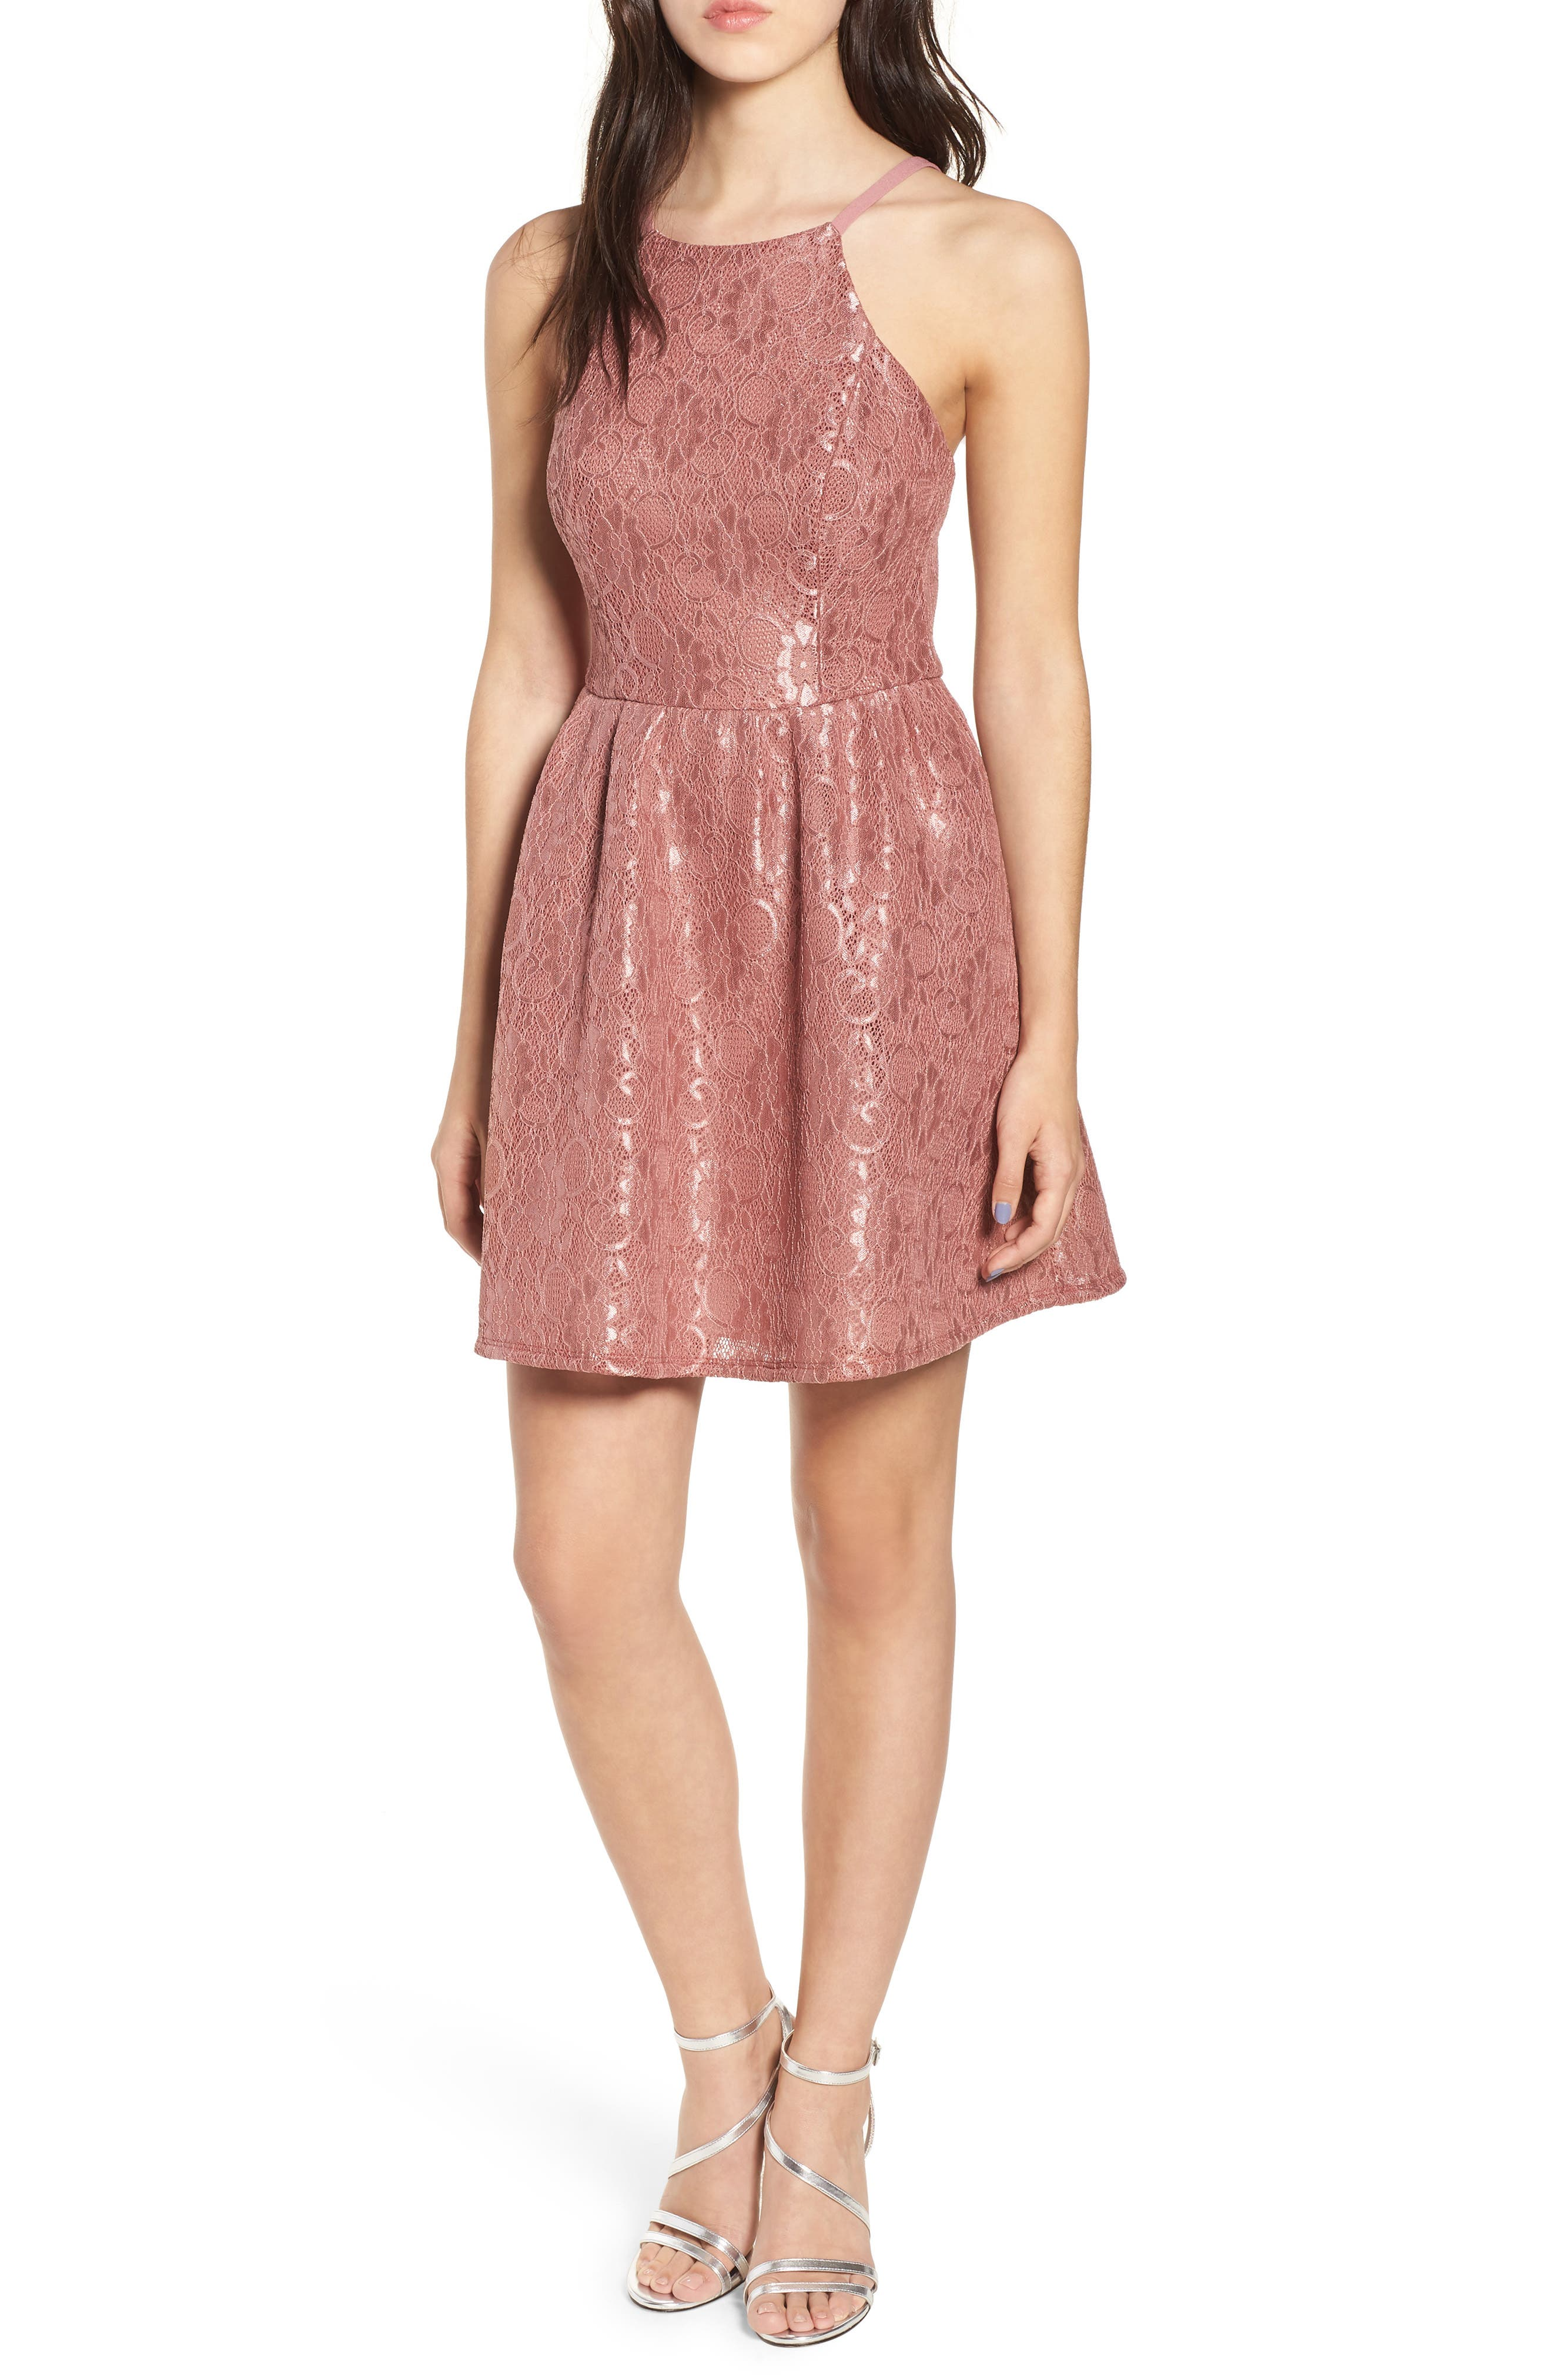 Lace Halter Low Back Party Dress,                             Main thumbnail 1, color,                             New Mauve